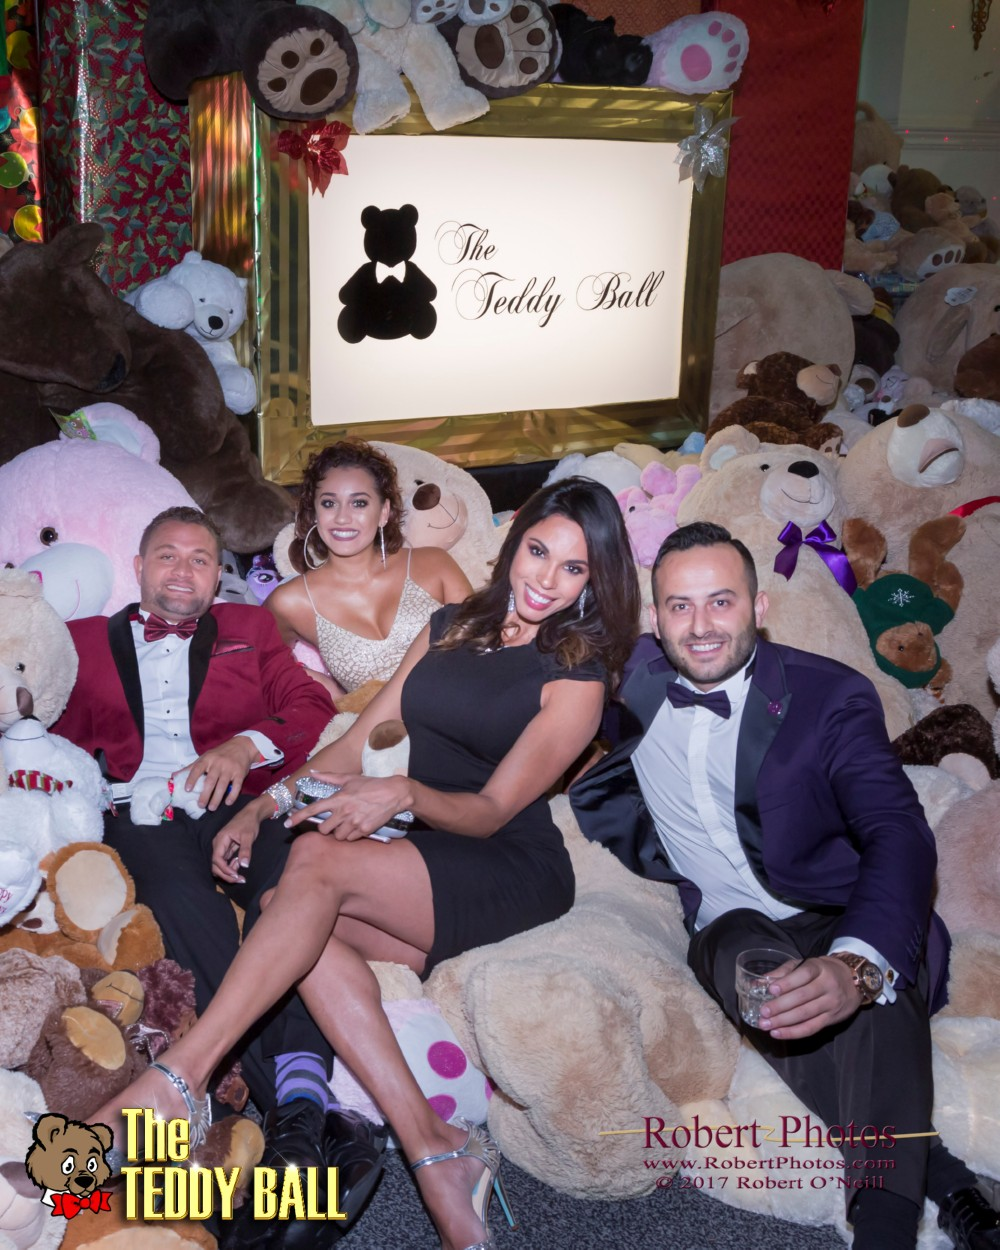 Teddy-Ball-2017-Robert-Photos- 43.jpg